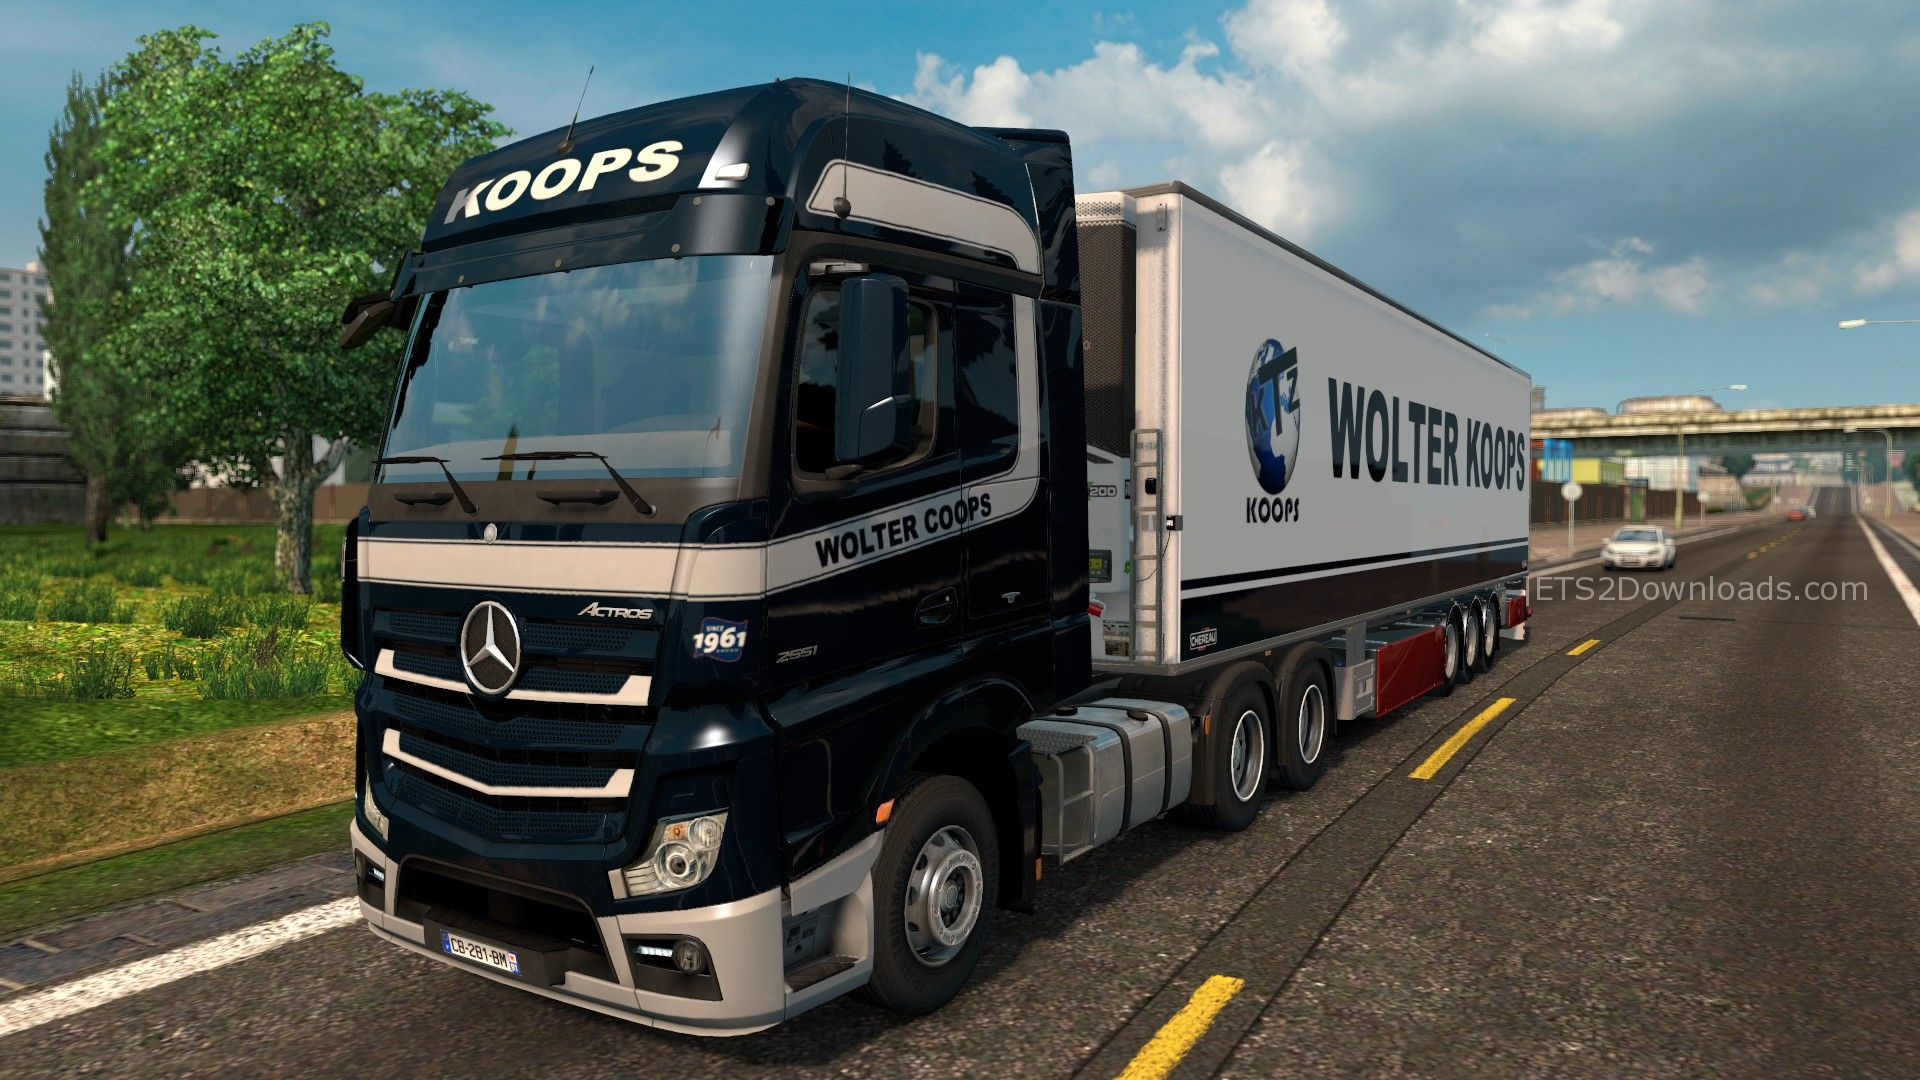 wolter-koops-skin-pack-for-mercedes-benz-actros-mpiv-1